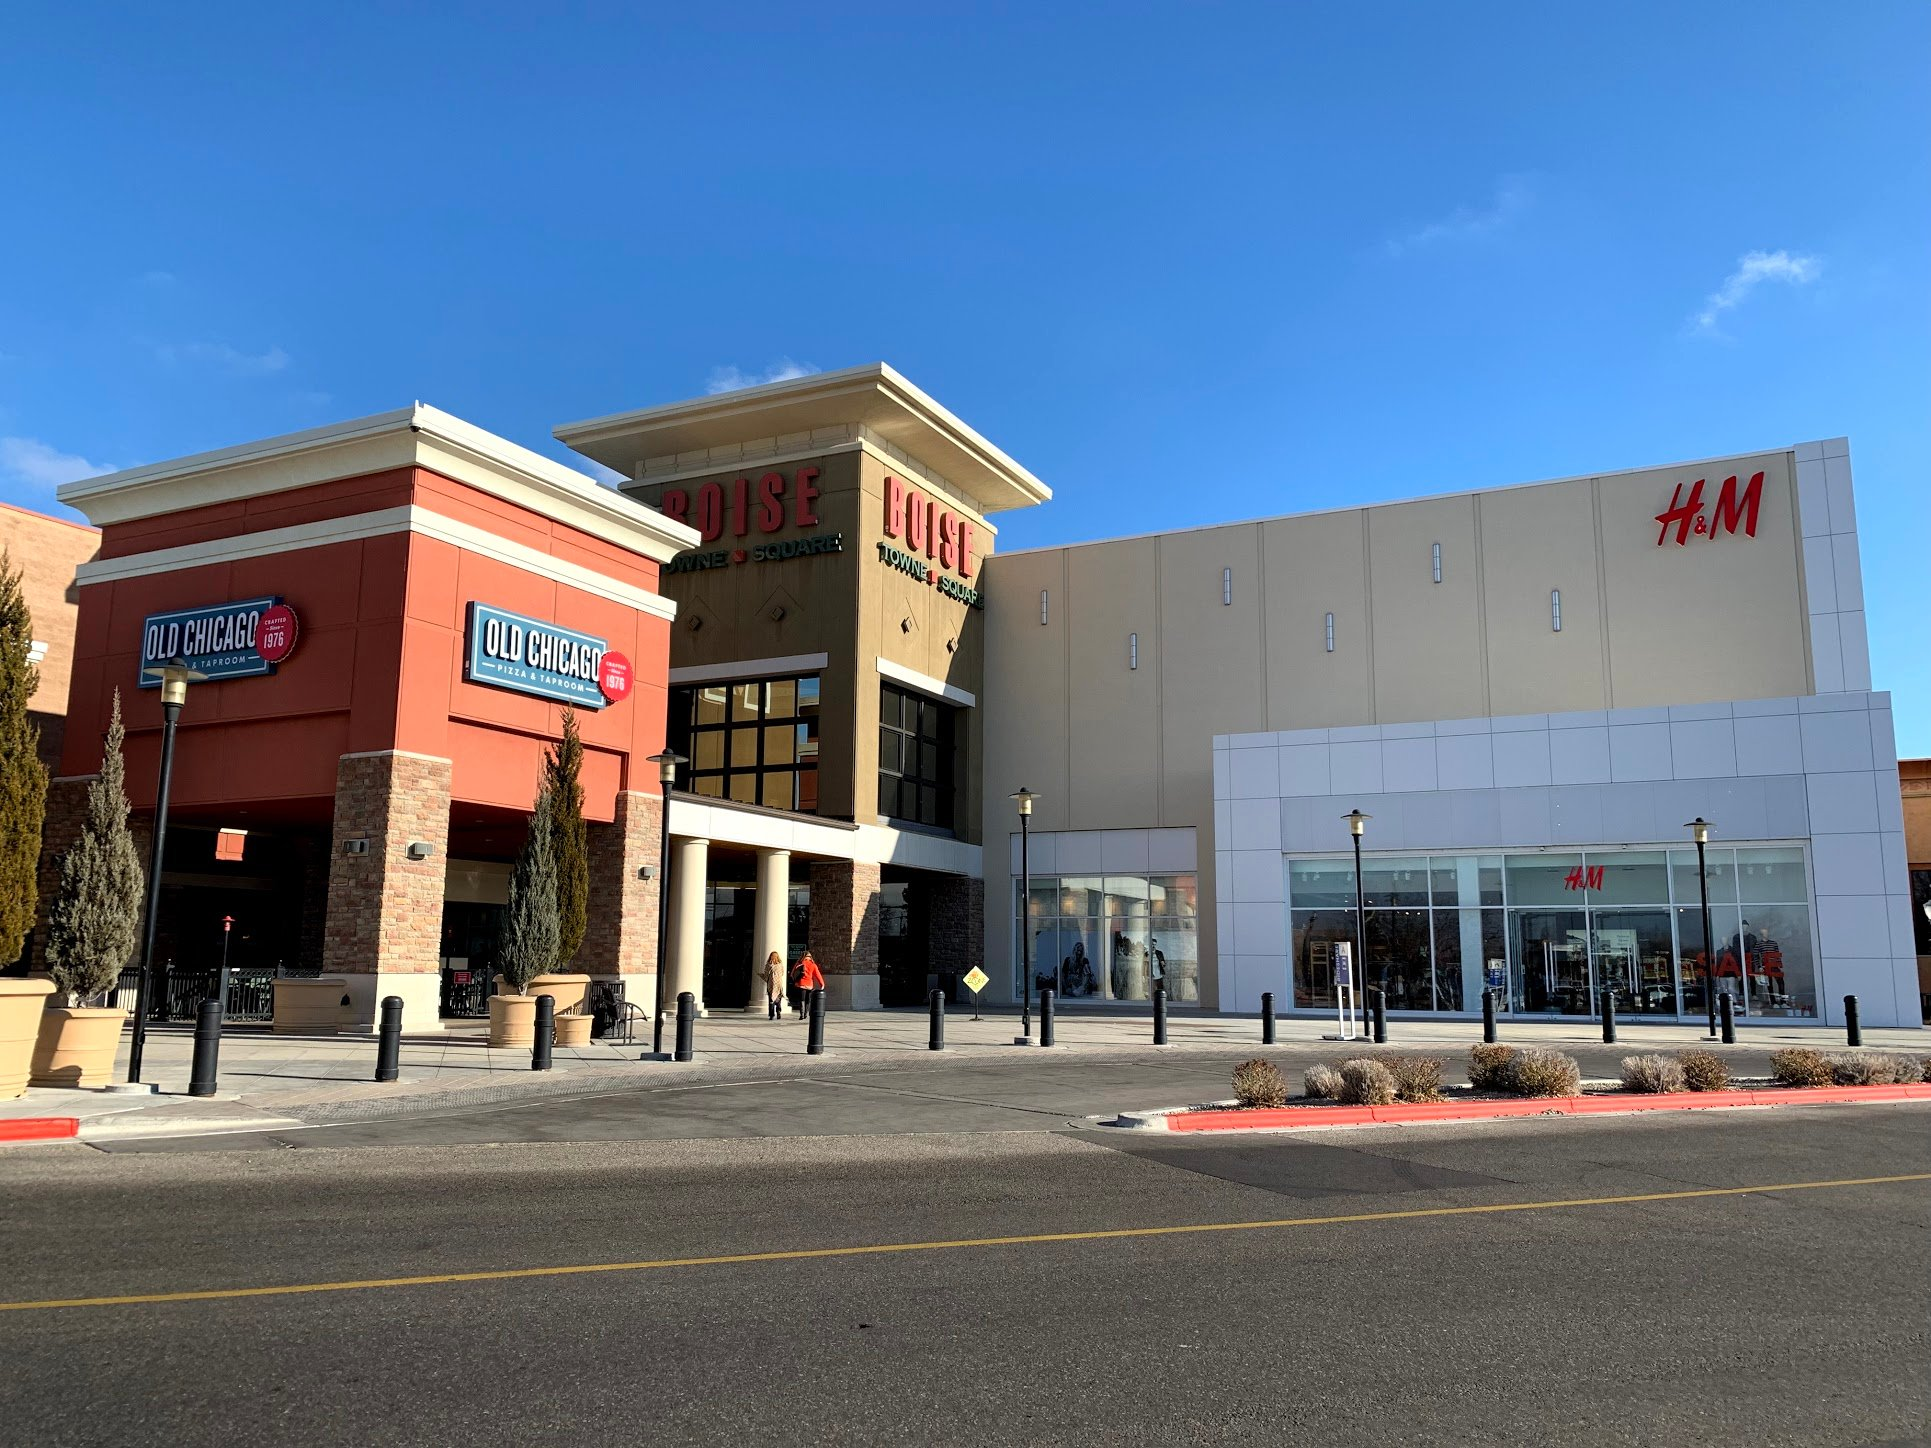 Watch brand to open new store in Boise Towne Square - BoiseDev